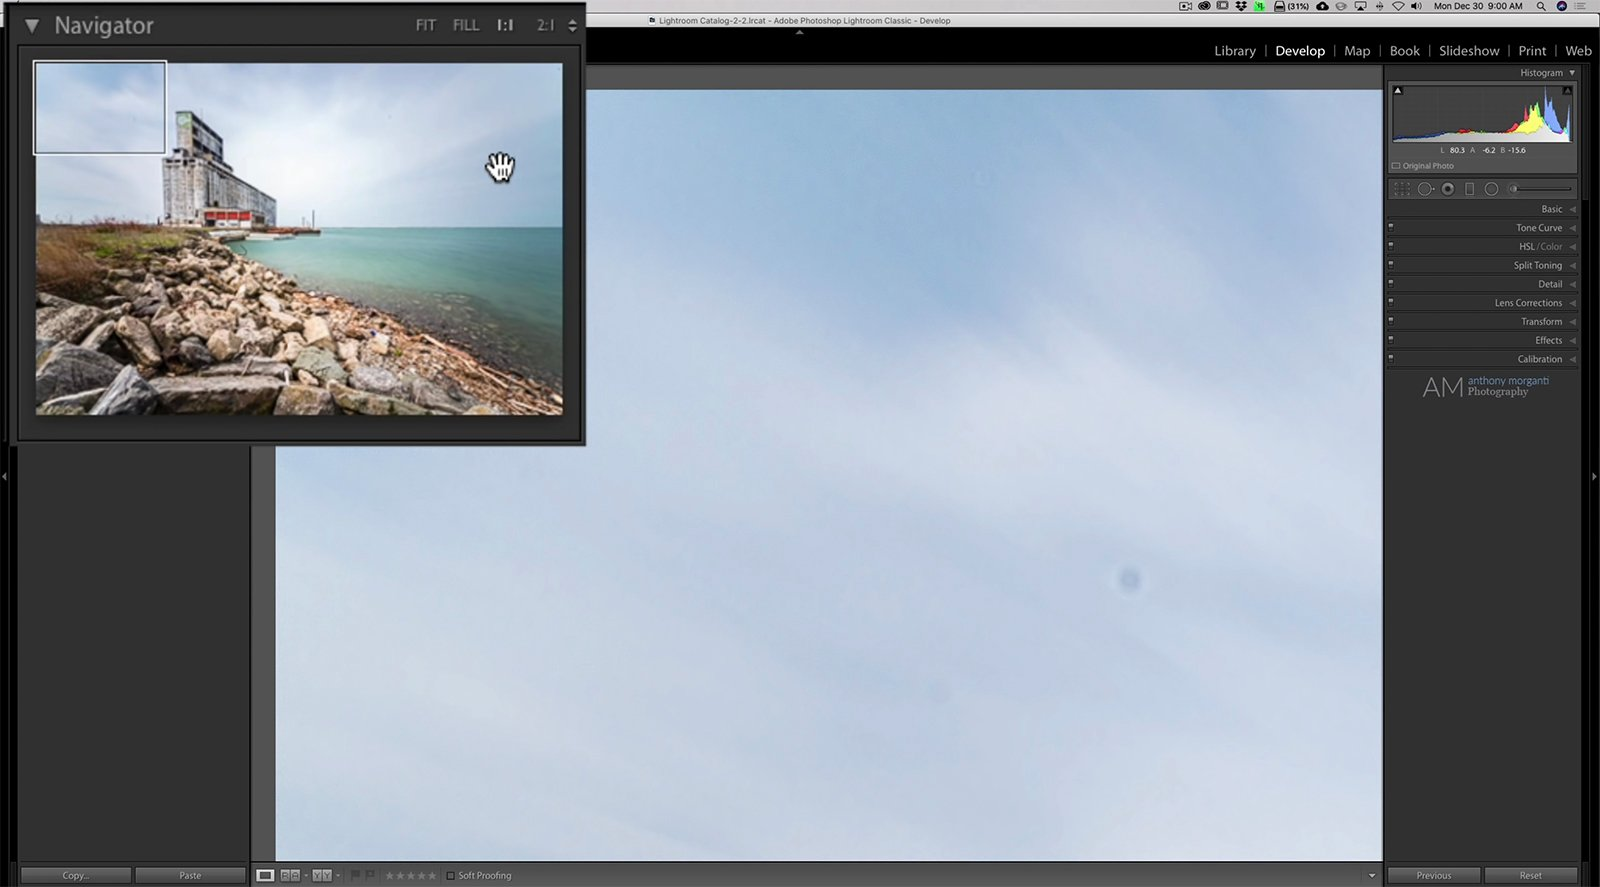 Simple Lightroom Trick Helps You Find Sensor Spots (or Anything Else) in Your Photos